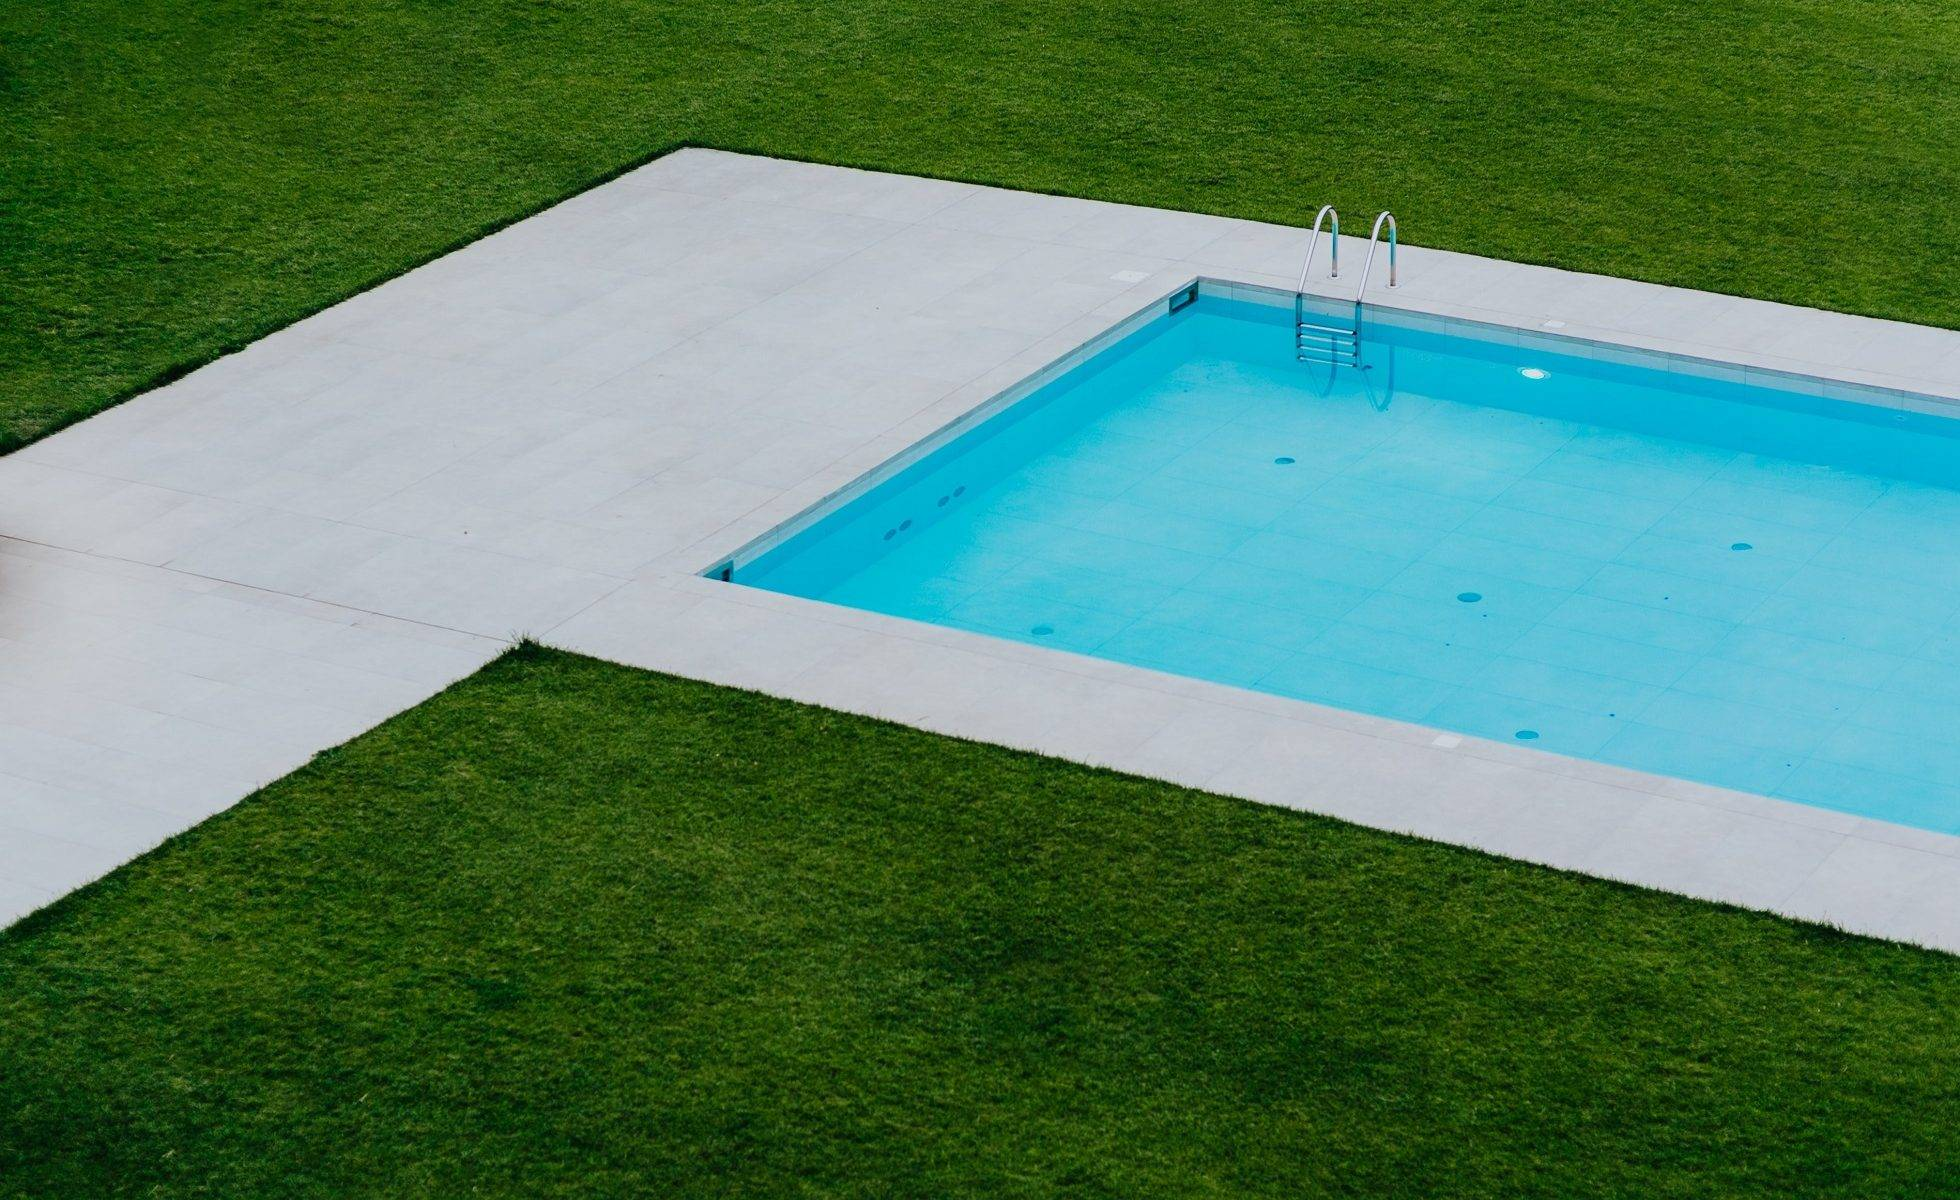 Perth Lawn Mowing Service - Swimming Pool